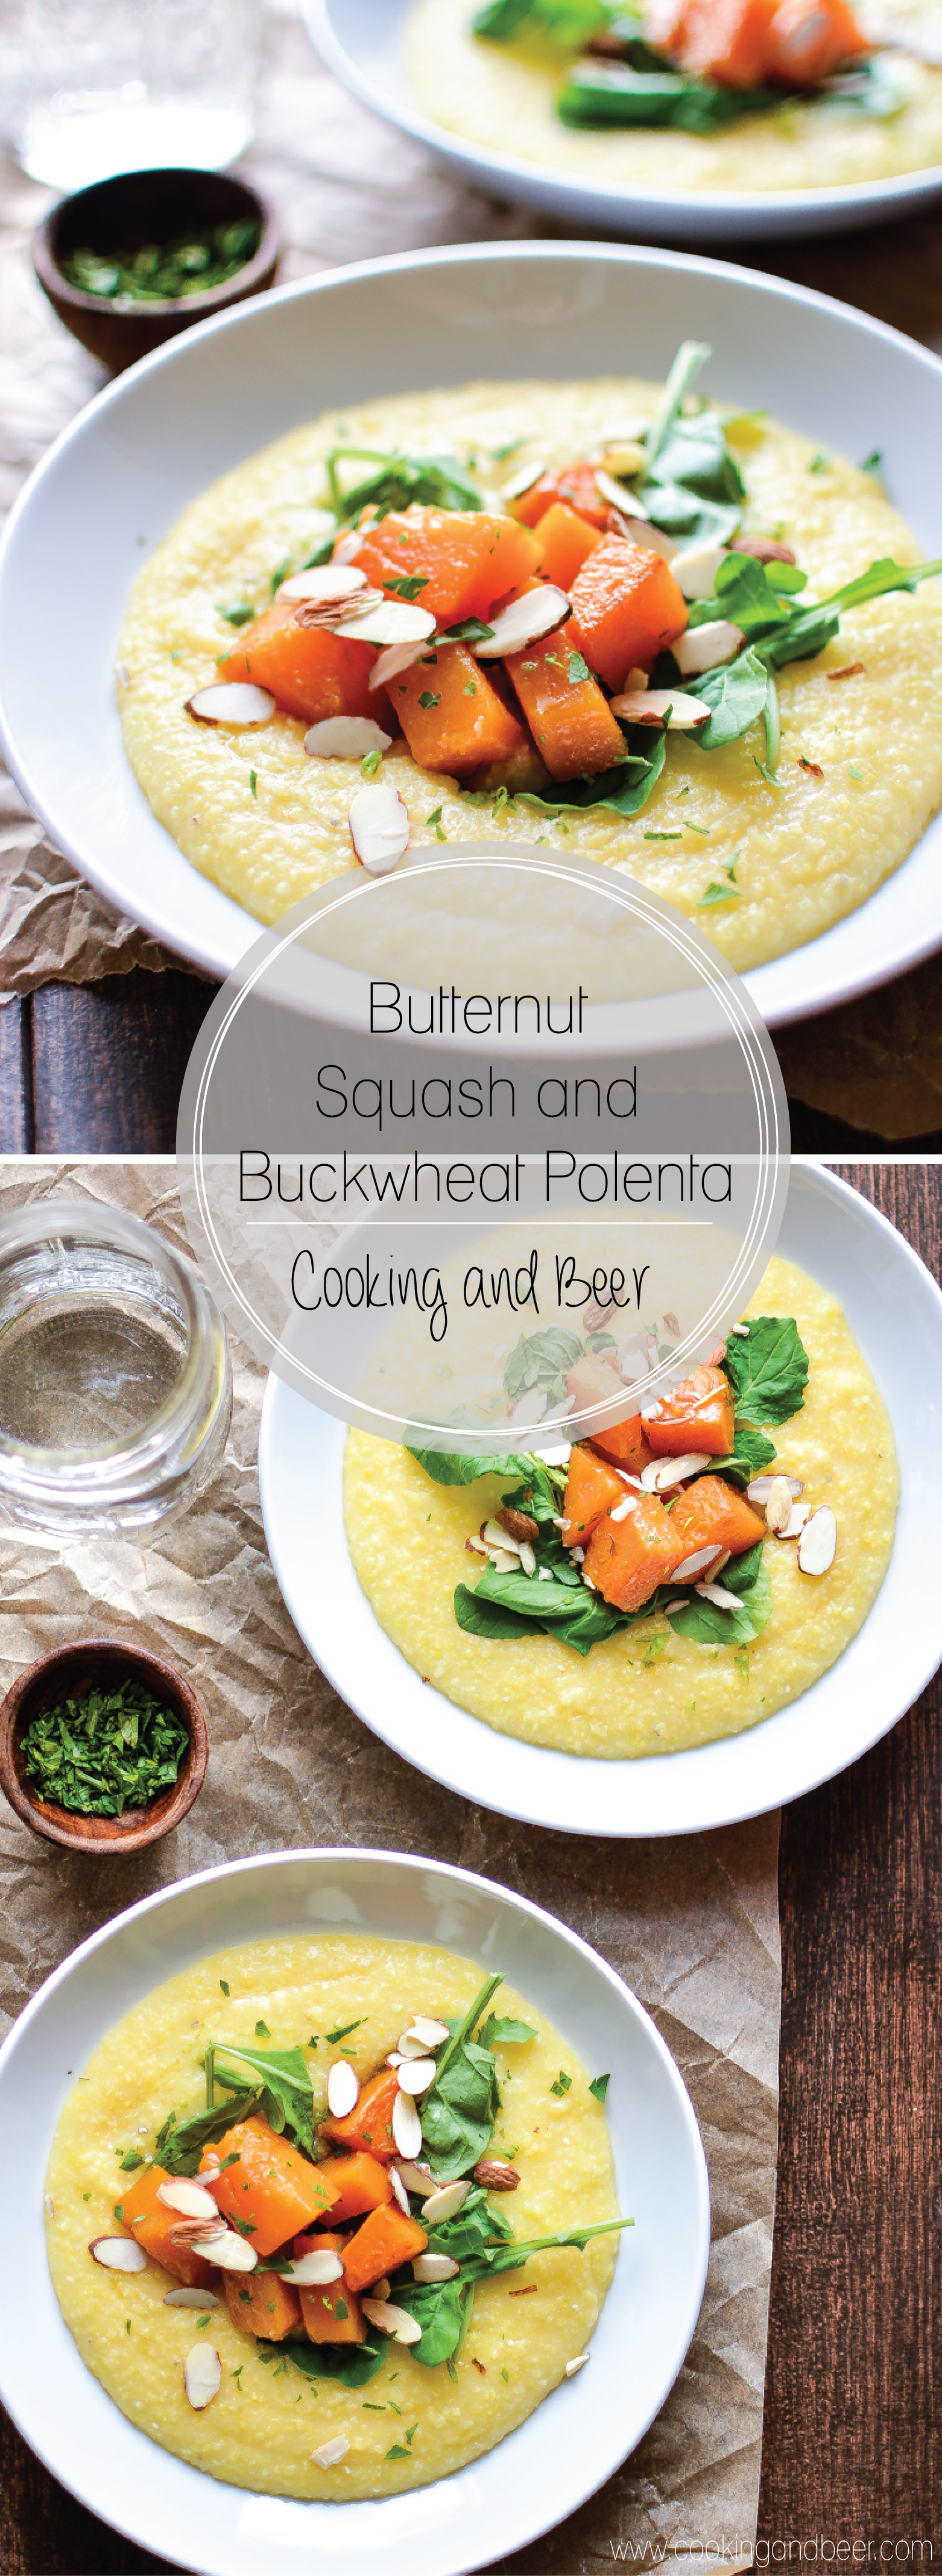 Butternut Squash and Cheesy Buckwheat Polenta: a fall spin on a classic dinner recipe that incorporates buckwheat!